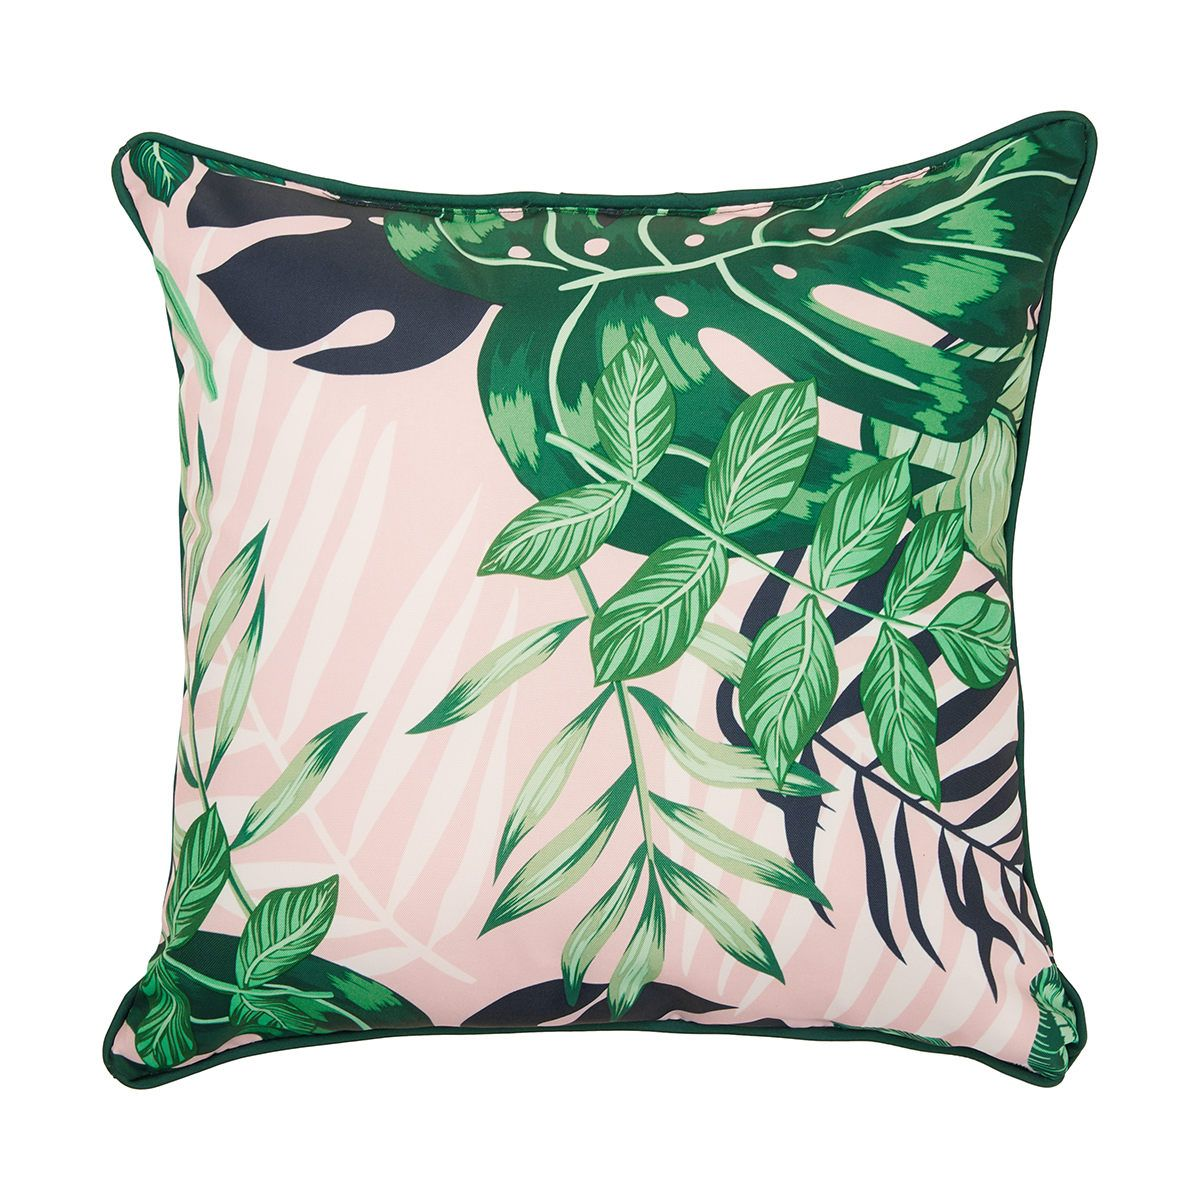 Botanical Outdoor Cushion (With images) Outdoor cushions